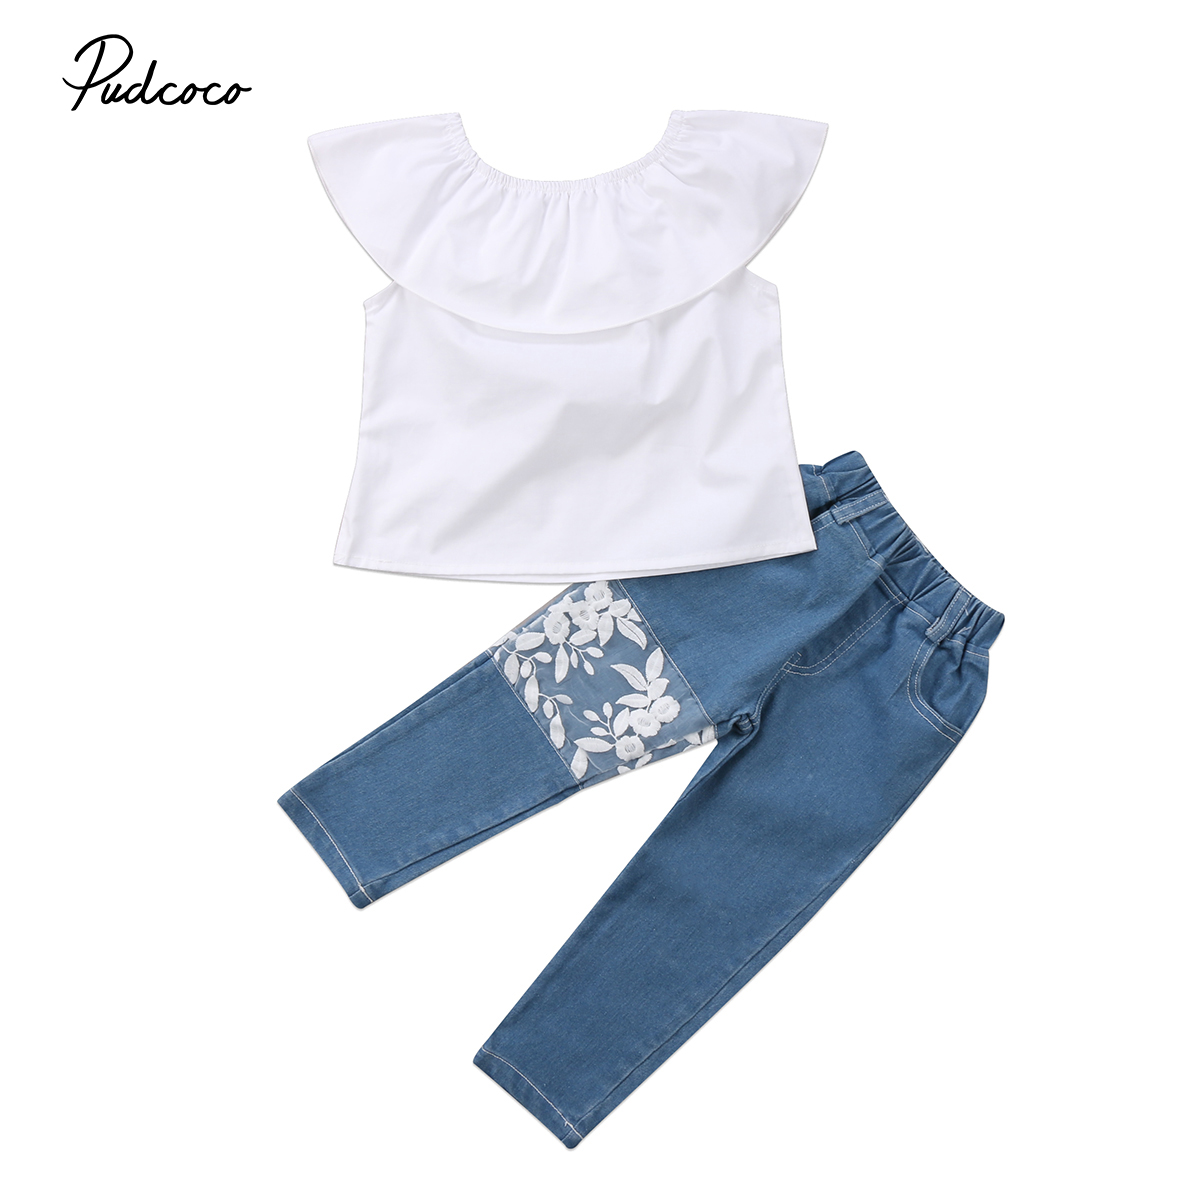 2018 Brand New Newborn Toddler Infant Child Baby Kids Girls Lace Outfits Off Shoulder Top Jeans Denim Pants Fashion Clothes 0-5T tangnest stylish distressed women jeans 2017 new fashion brand ripped jean pants capris casual wear denim trousers wkn478